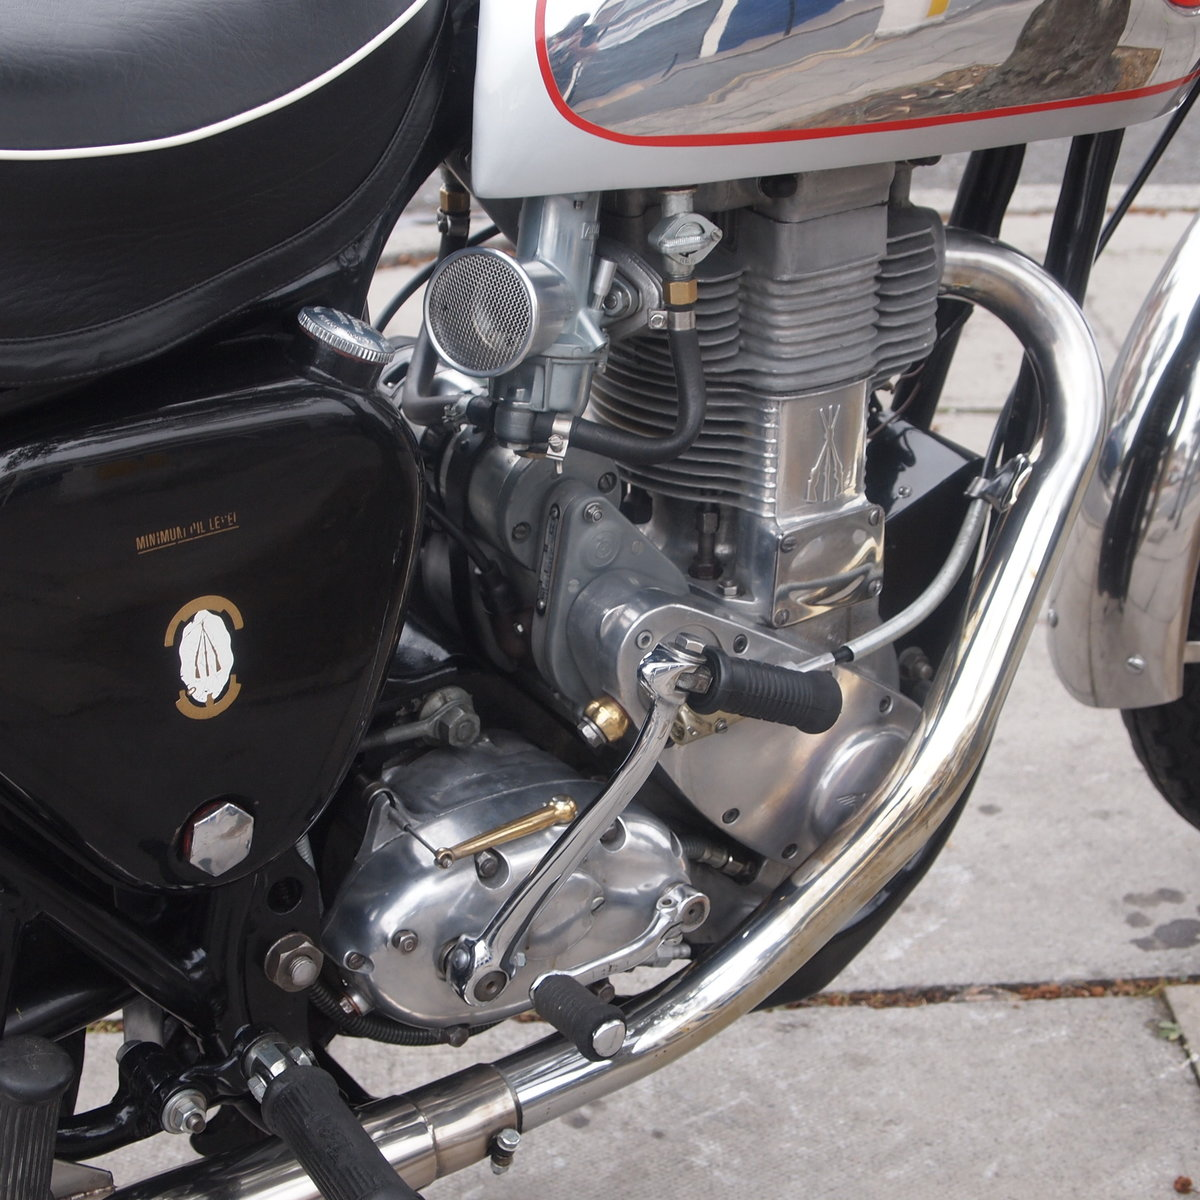 1955 BSA Gold Star 350 With Amal And GP Carb, Nice Motorcycle. For Sale (picture 2 of 6)